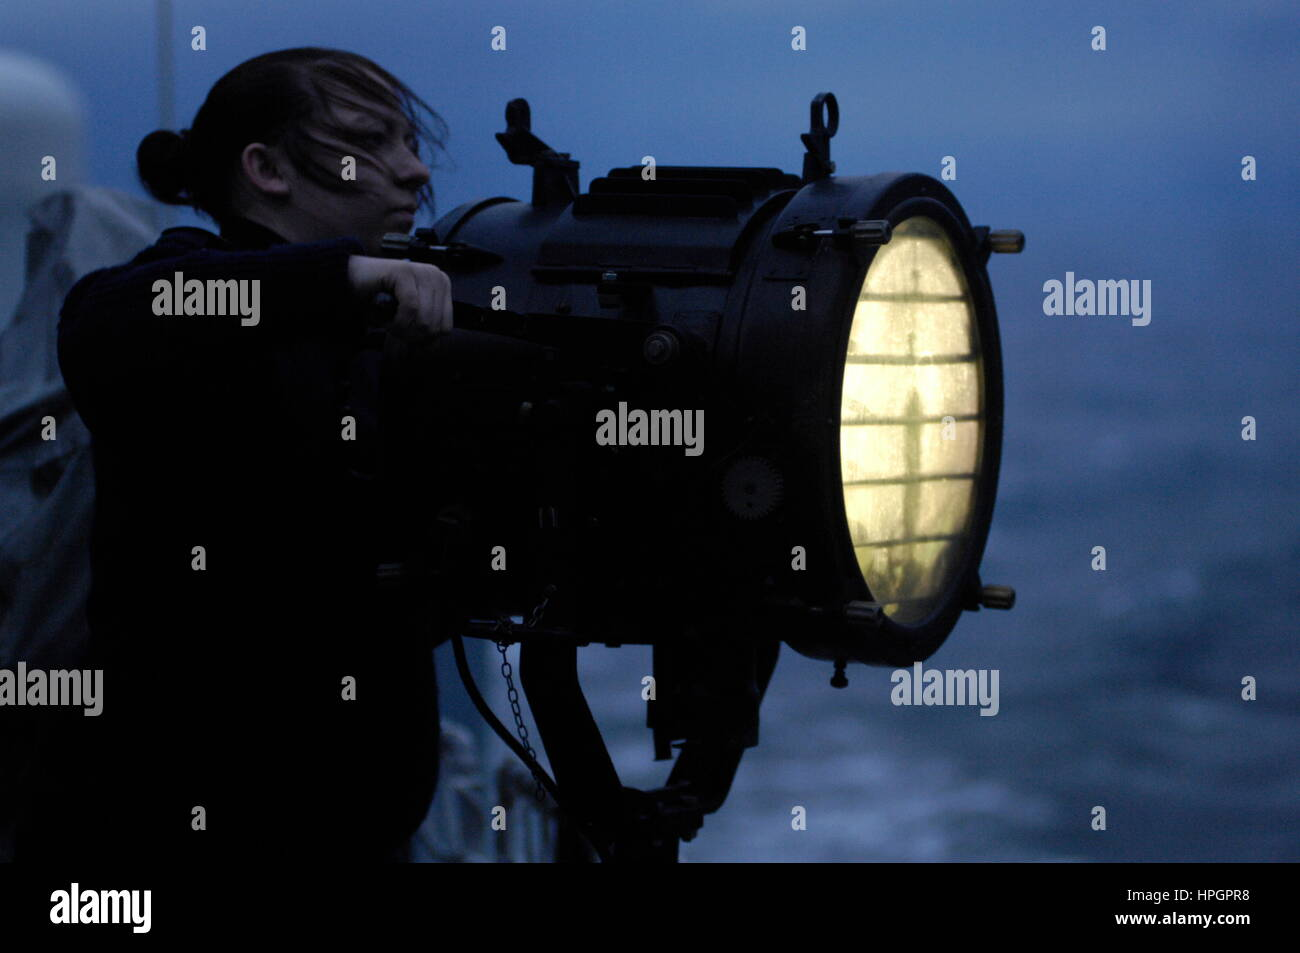 AJAXNETPHOTO. 2012. AT SEA, UK TERRITORIAL WATERS. - A WARSHIP'S ALDIS LAMP IN USE TO SEND SIGNALS TO OTHER - Stock Image